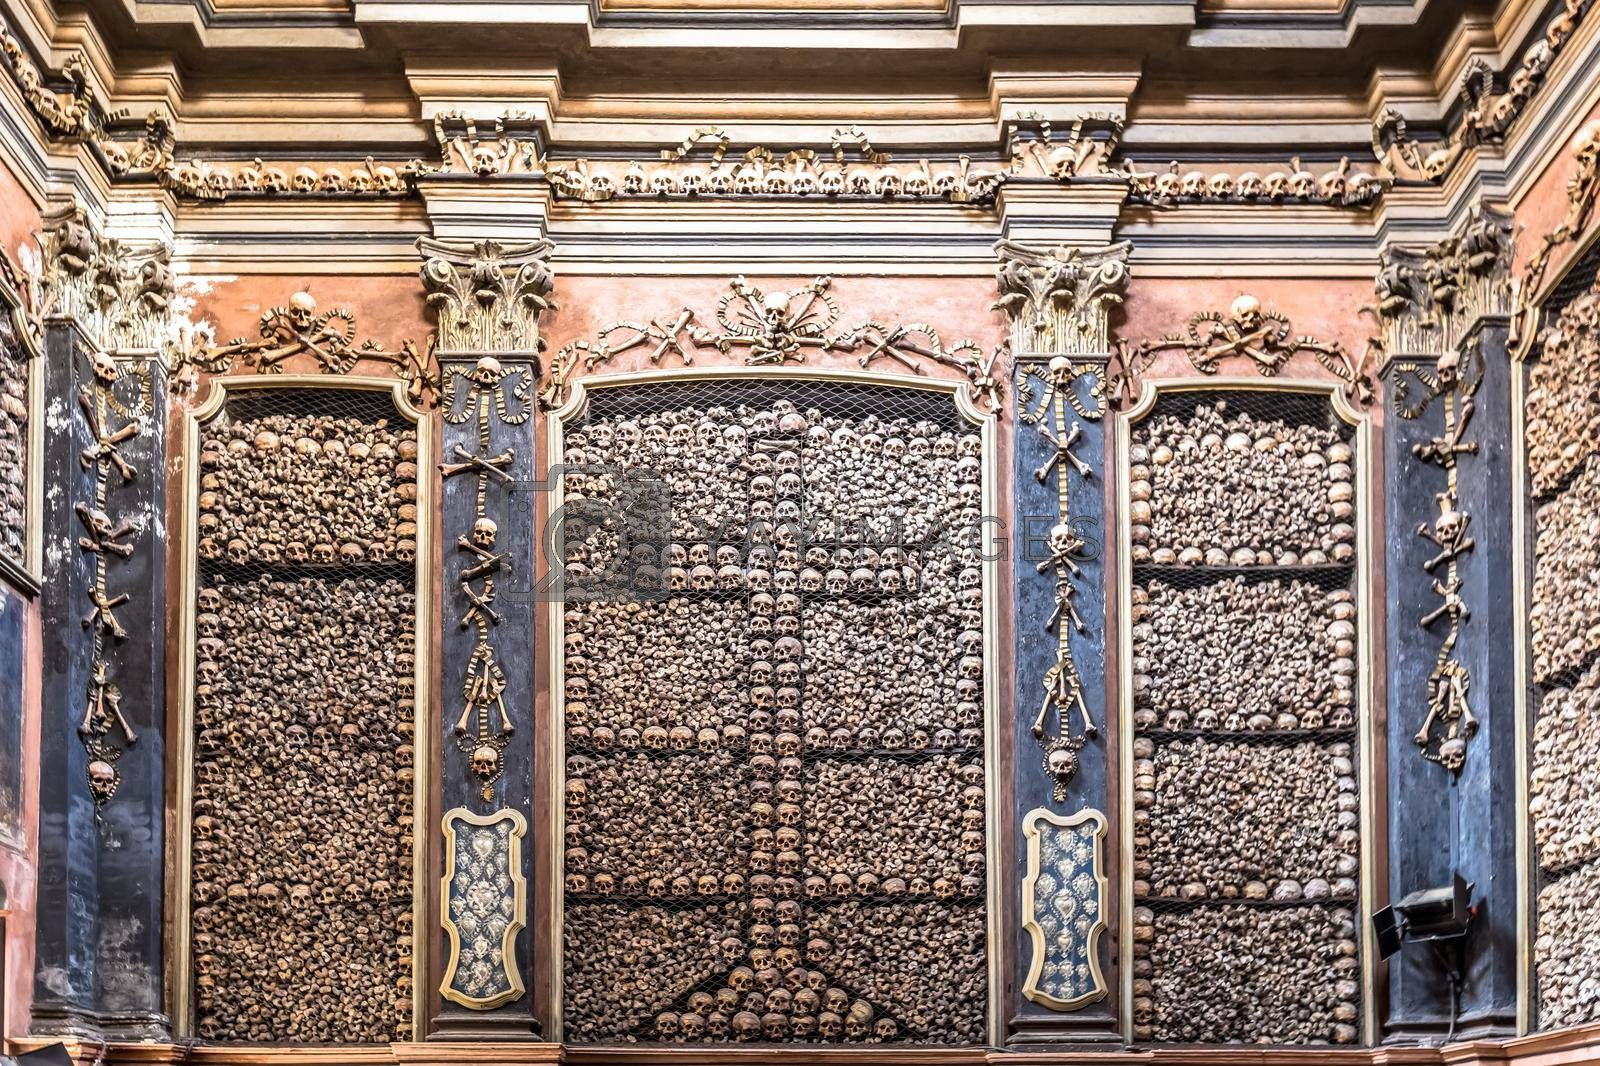 Milan, Italy - Circa August 2020. Ossuary Chapel in San Bernardino alle Ossa Church. Every architectural detail is clad in human bones.